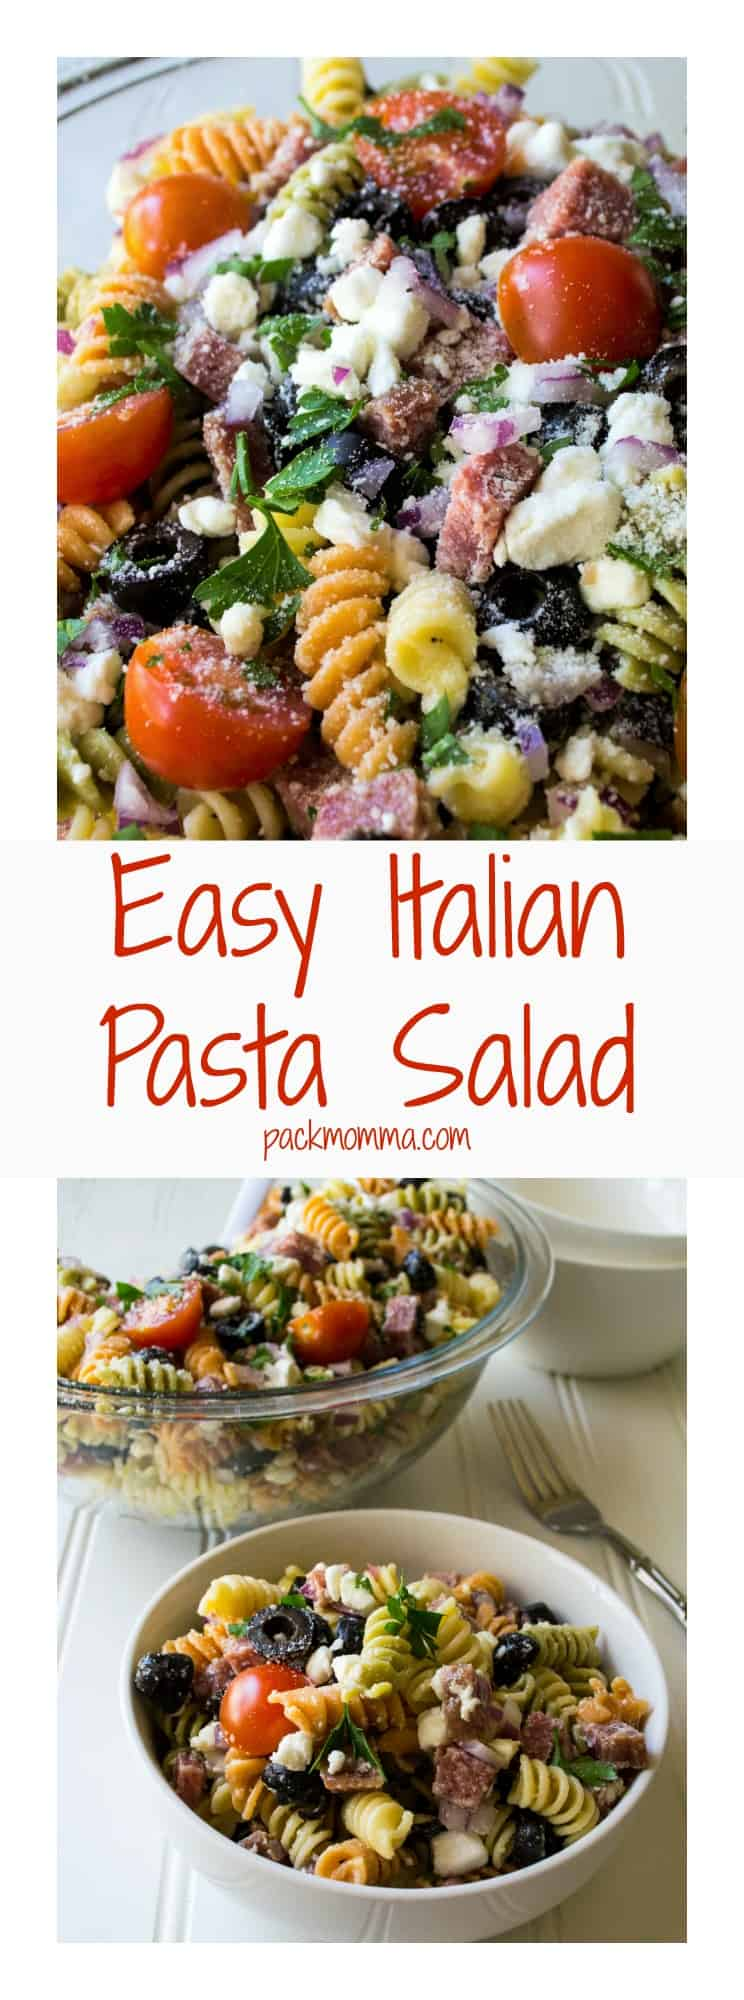 Easy Italian Pasta Salad   Easy Italian Pasta Salad is the perfect cold salad to bring to any BBQ, potluck or summer backyard party. The very best quick, easy and delicious side dish.   Pack Momma   https://www.packmomma.com